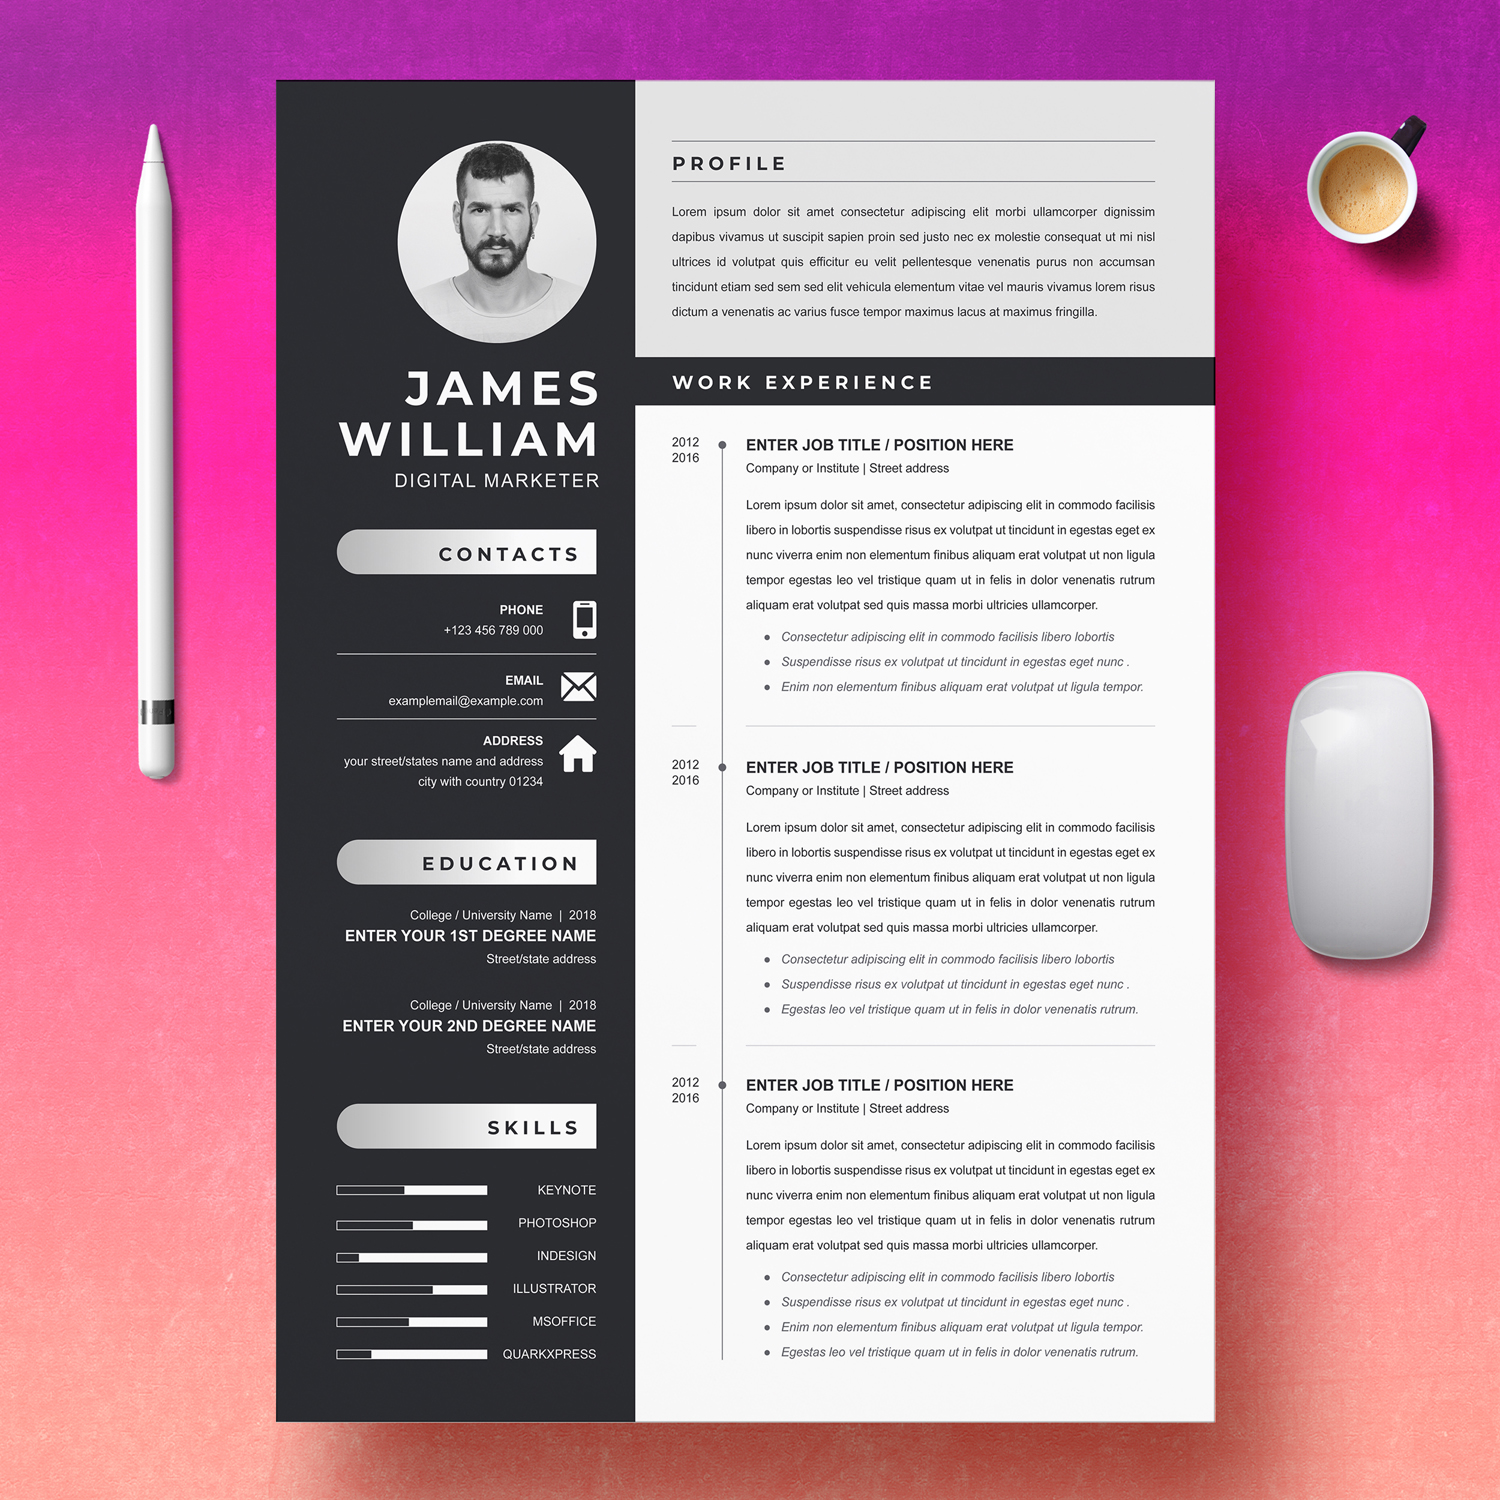 Marketer CV Template 2021